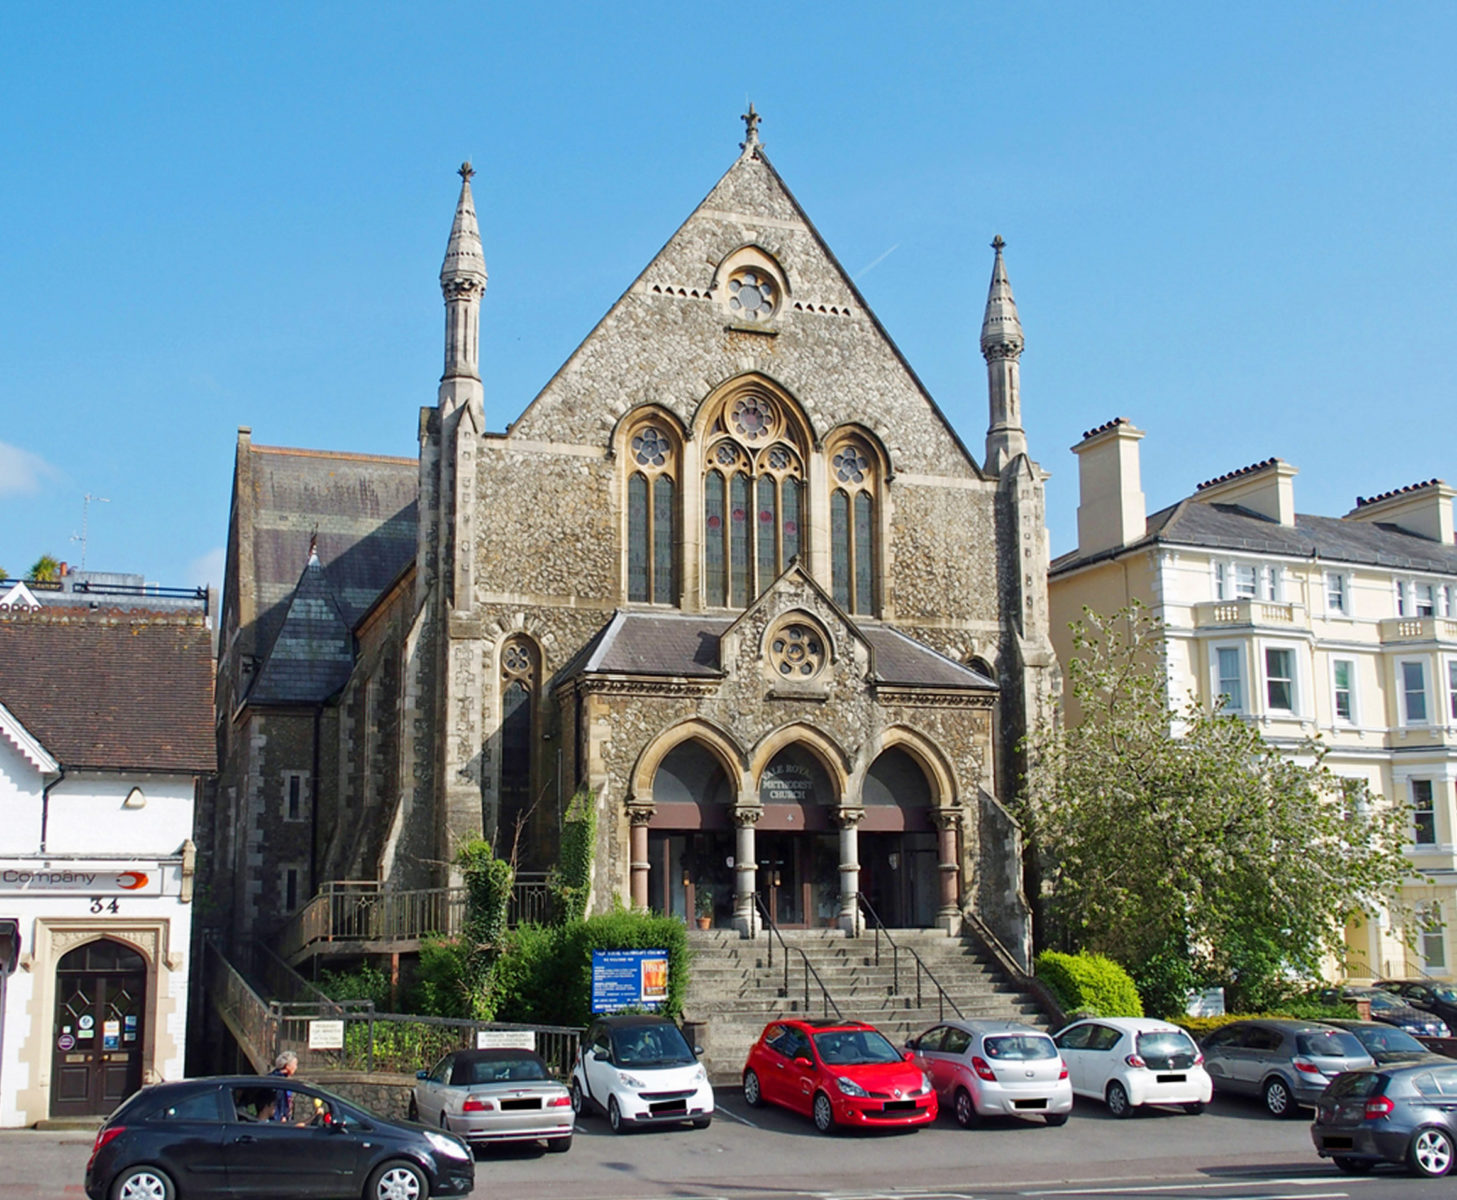 AUCTION LOT: Vale Royal Church, Tunbridge Wells